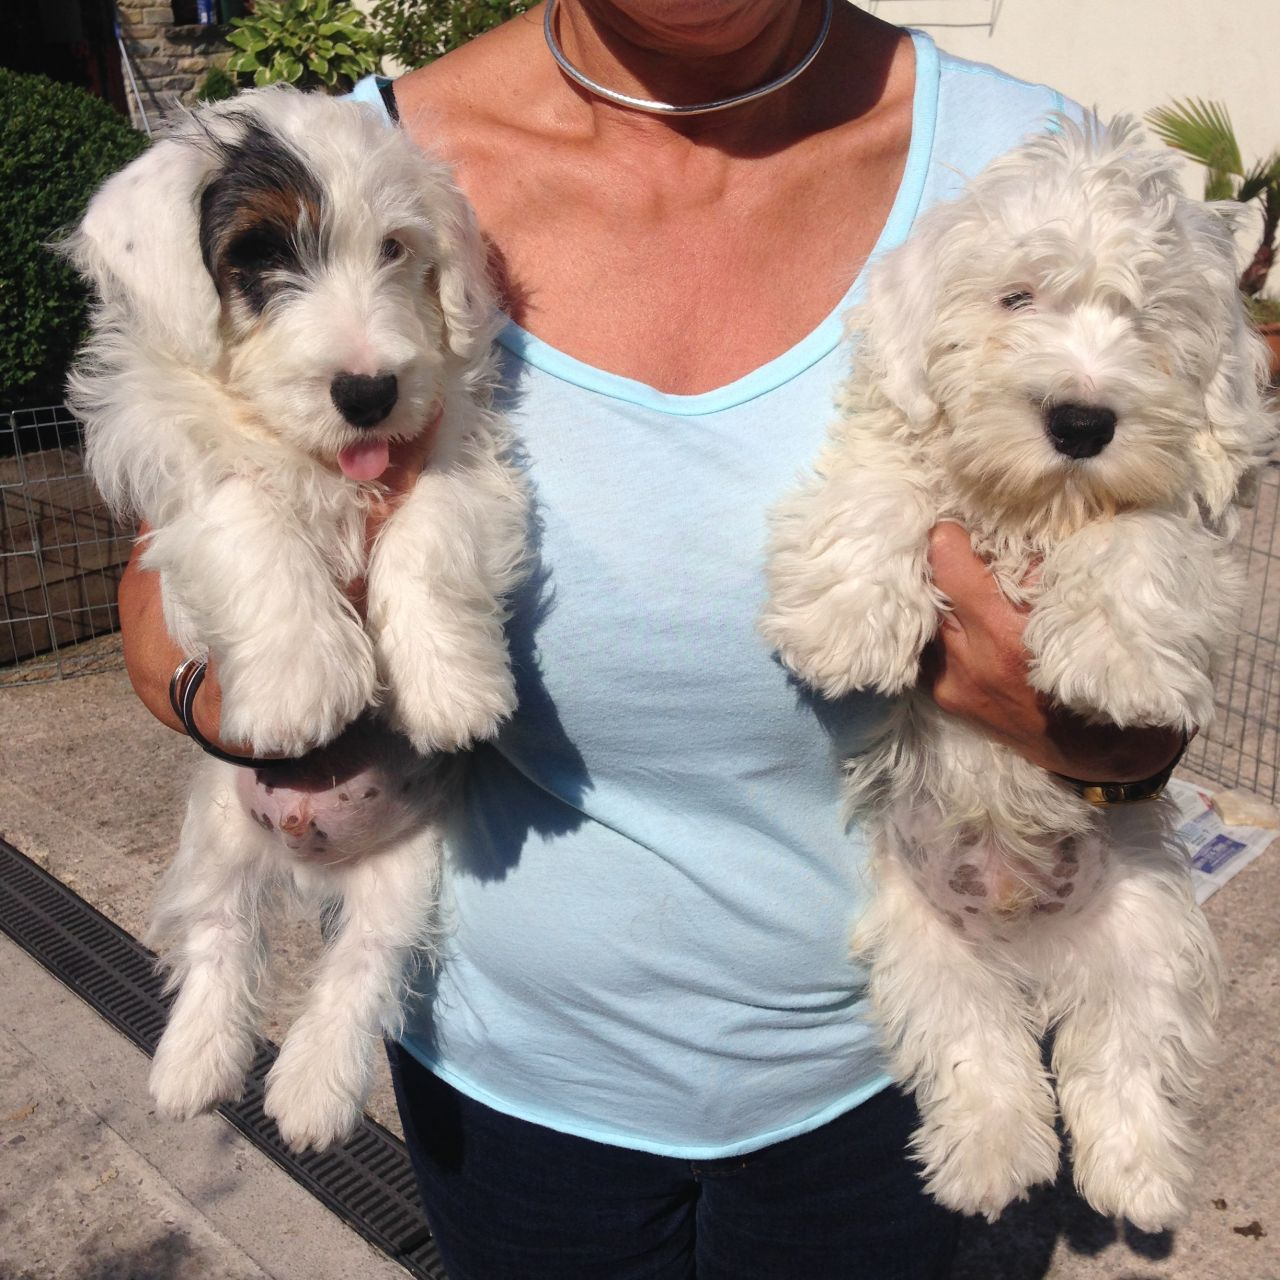 Sealyham Terrier Puppies: Sealyham Sealyham Terrier Puppies For Sale Langport Breed